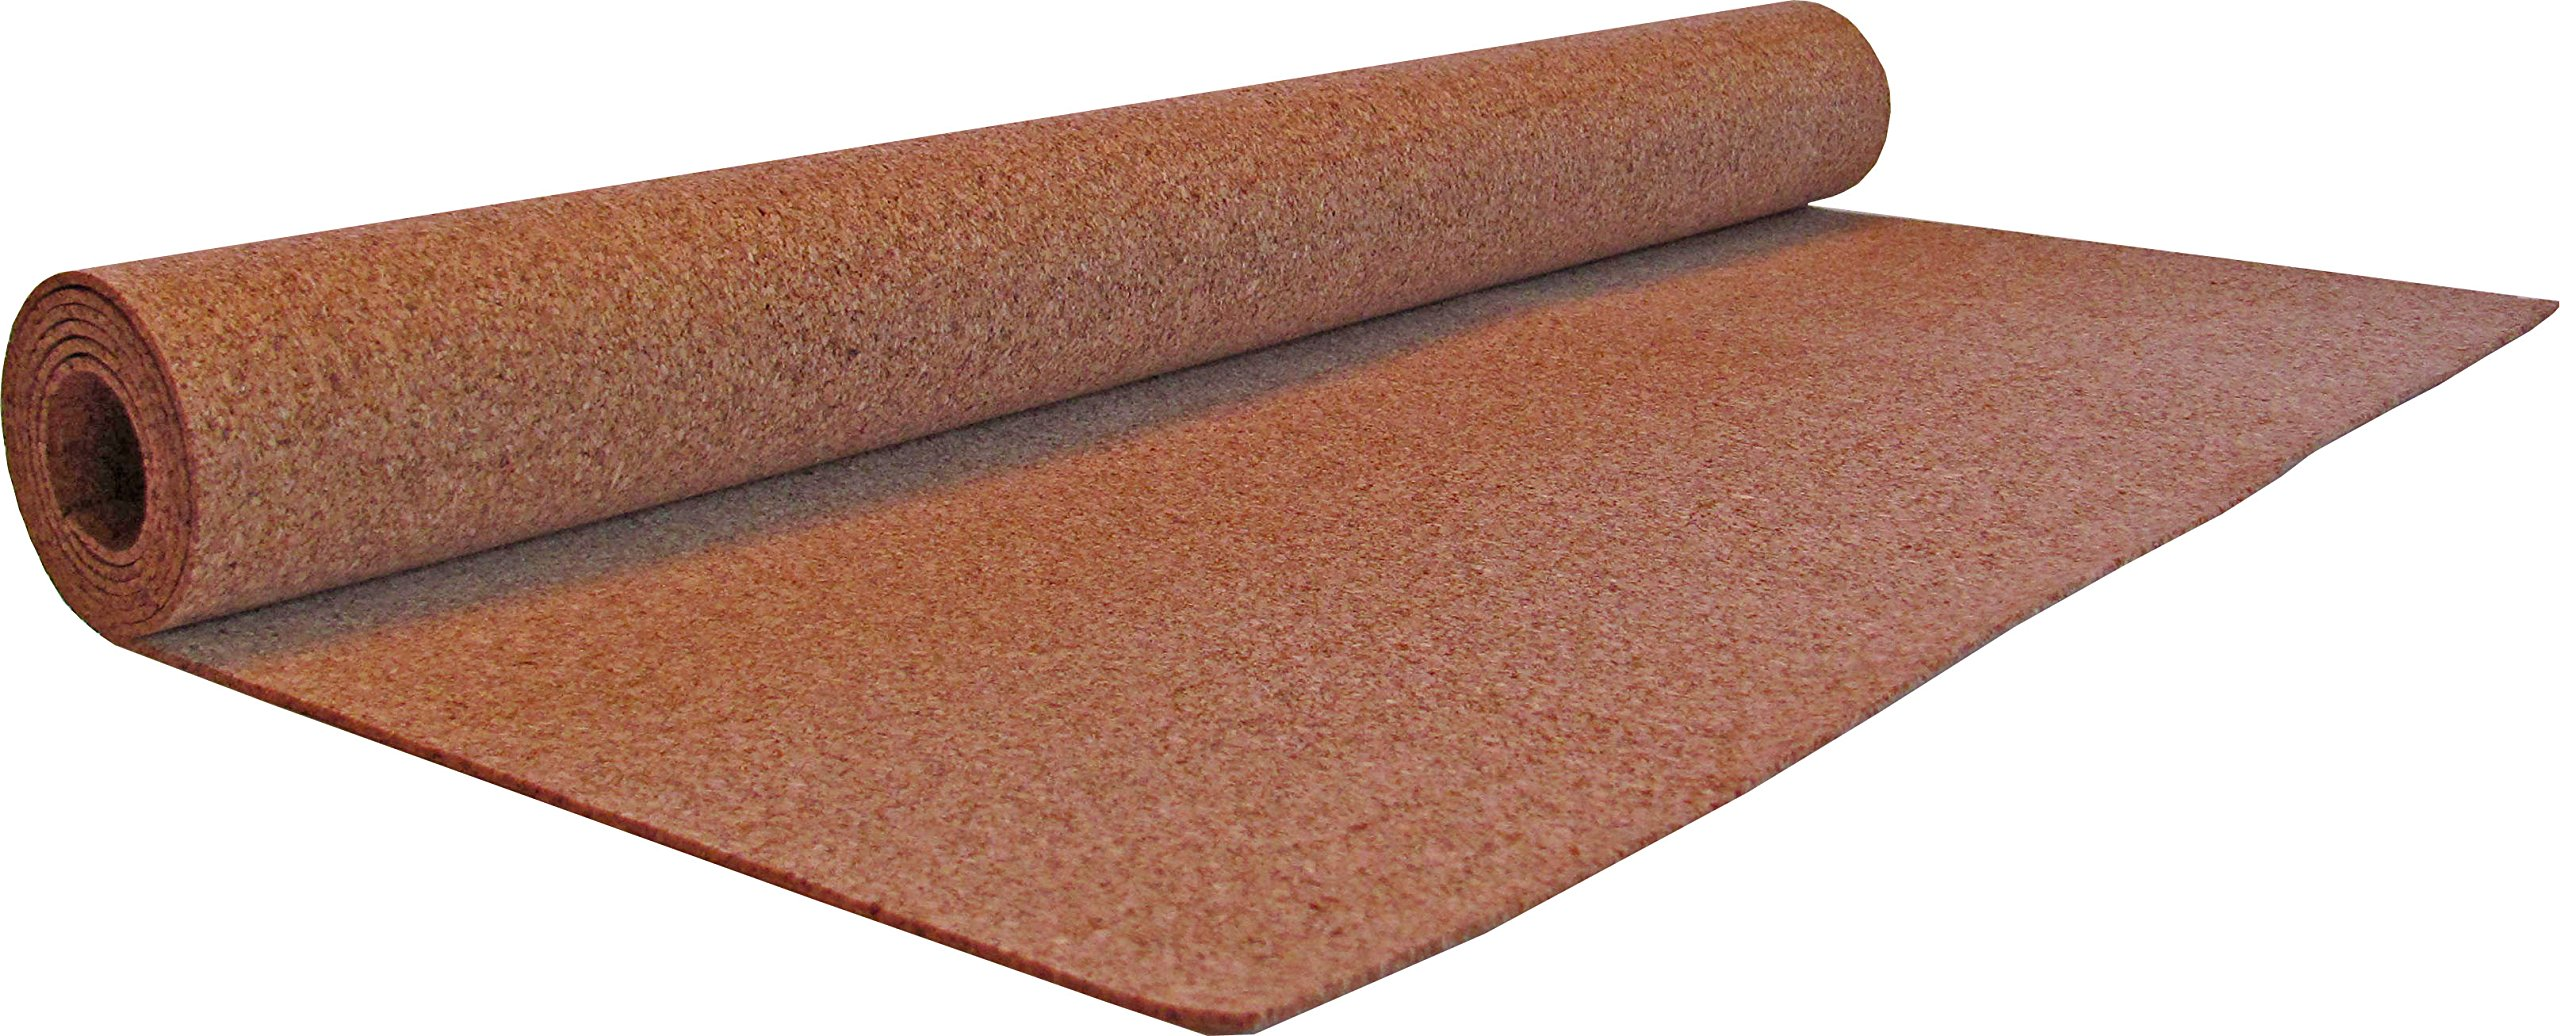 Flipside Products 38003 Cork Roll, 3 mm, 4' High x 24' Long